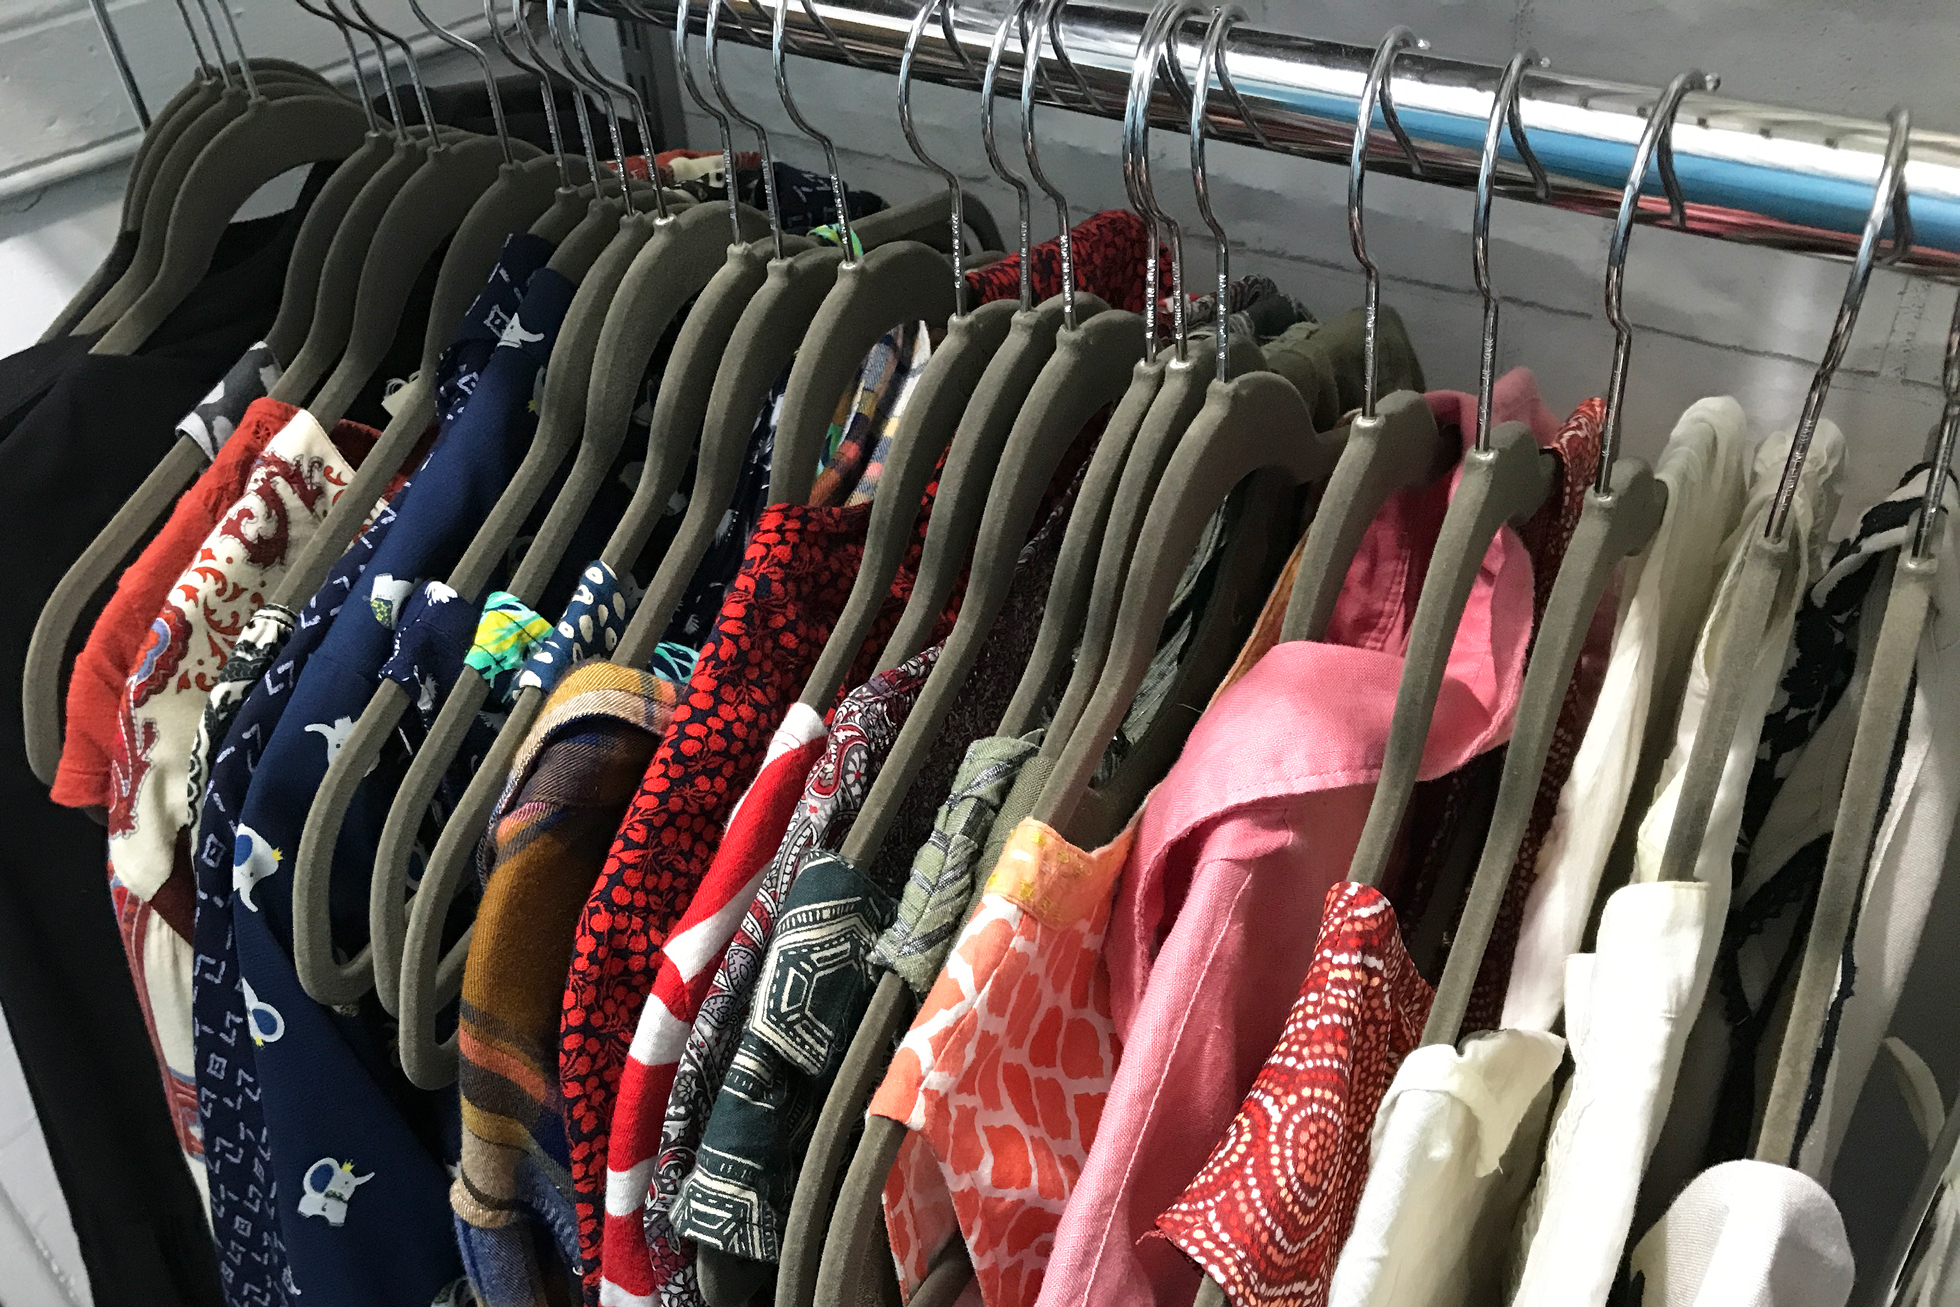 Gray felt hangers in a closet with colorful shirts